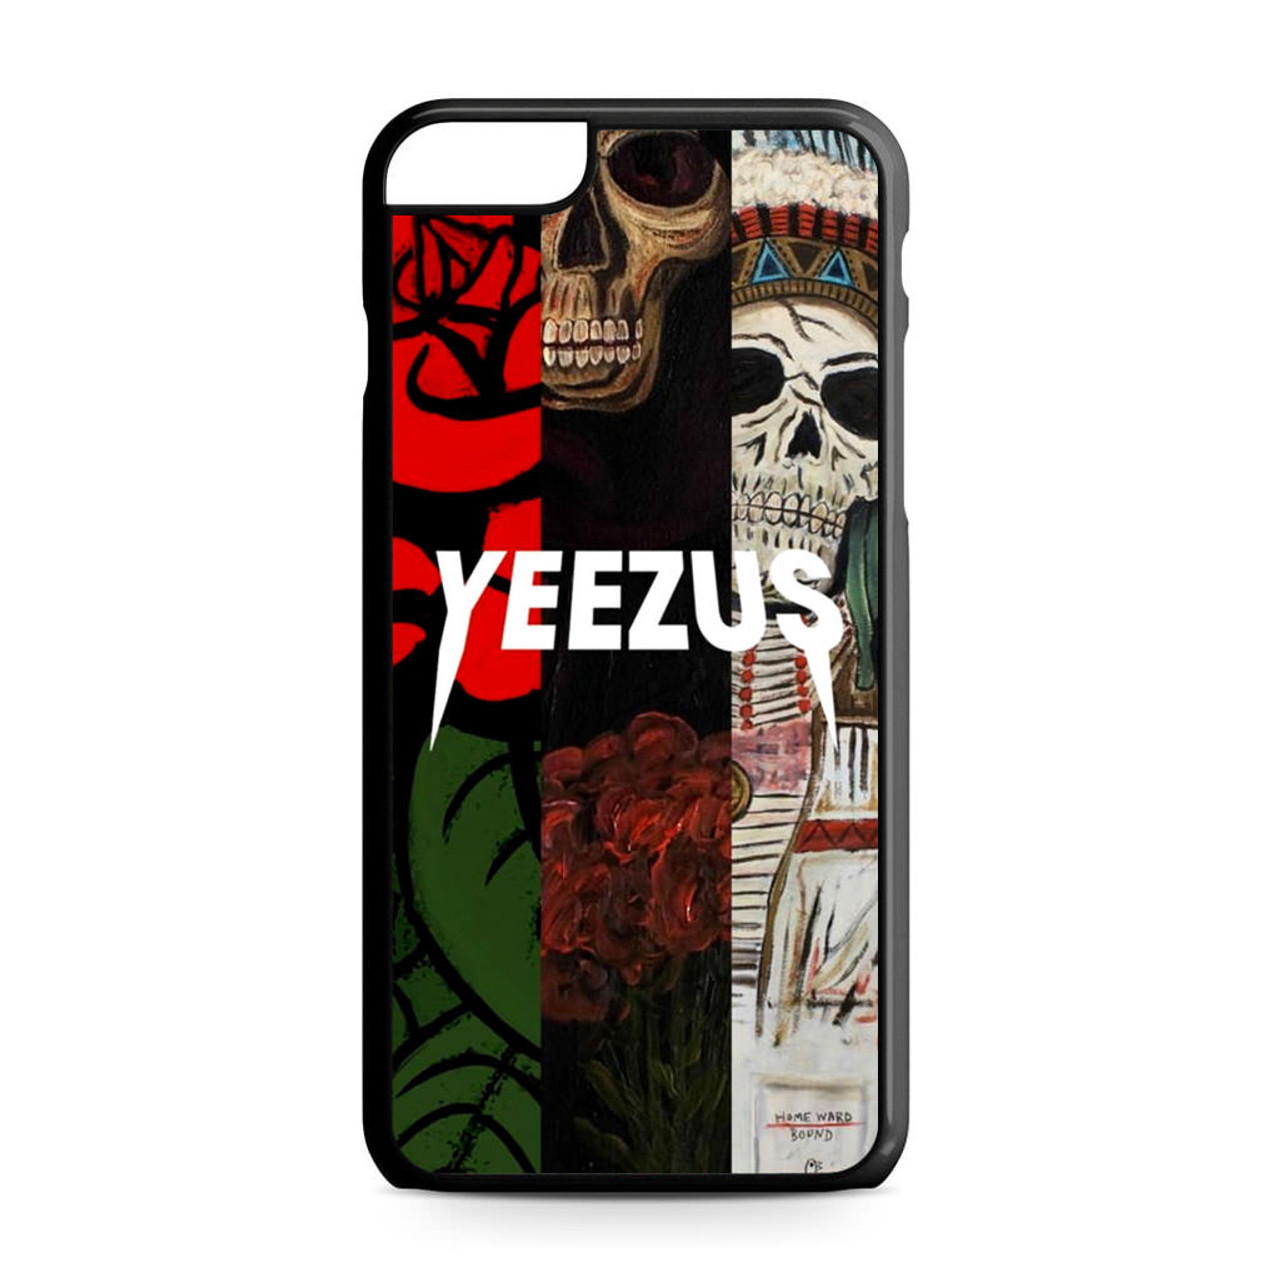 4a1adef7d49995 Kanye West Yeezus iPhone 6 Plus 6S Plus Case - CASESHUNTER